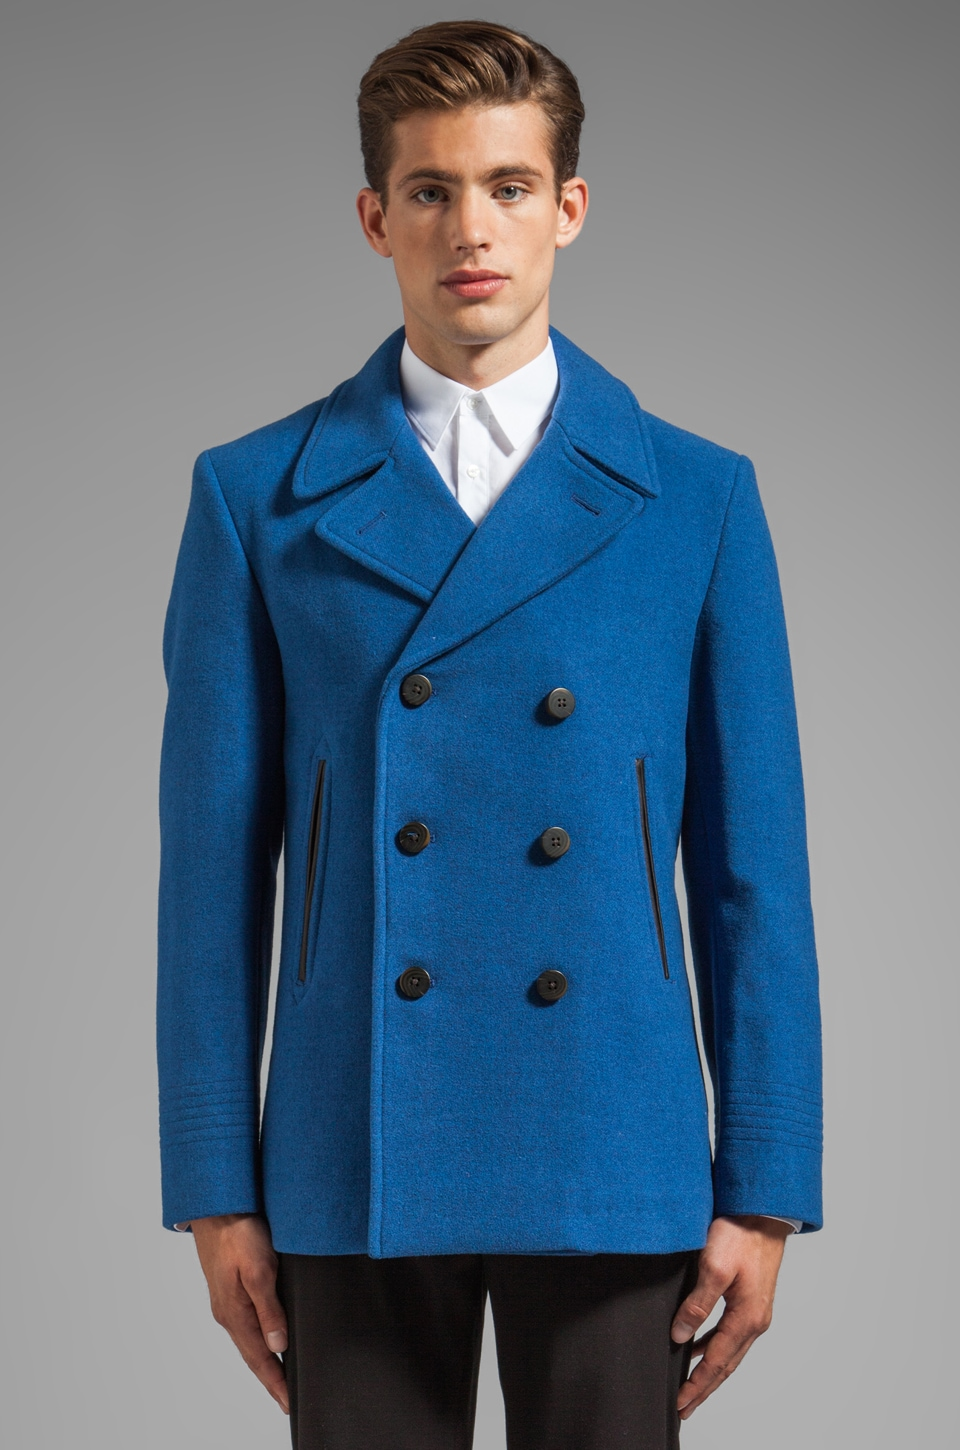 Marc by Marc Jacobs Rushmore Wool Coating in Bright Indigo